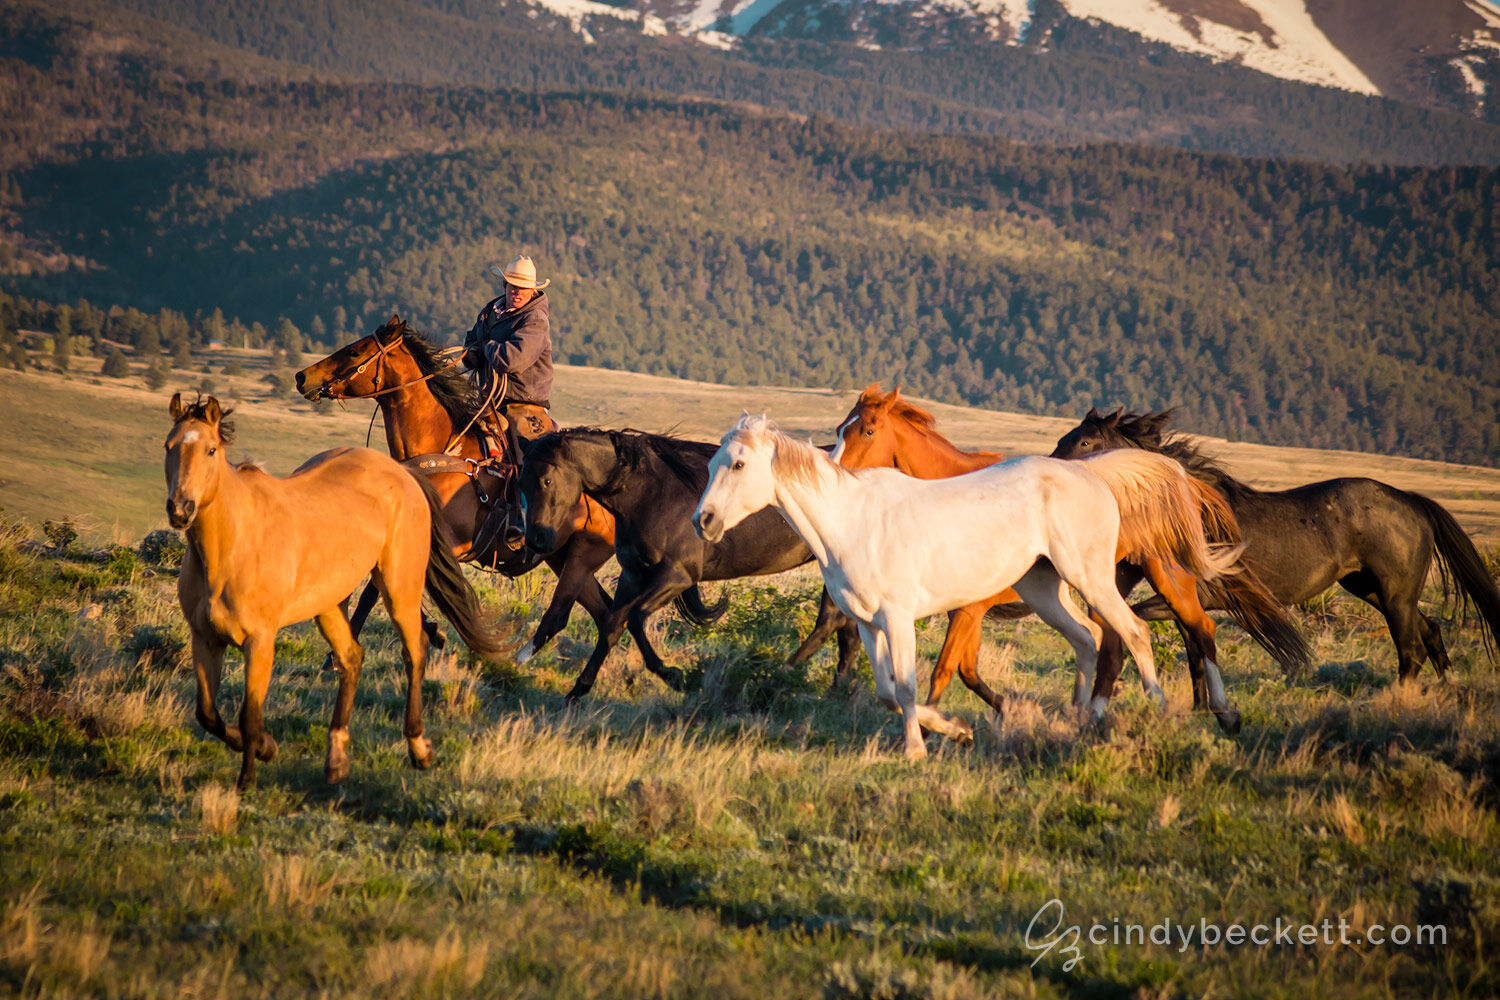 A cowgirl wrangles the ranches' working horses in the early morning hours as sunrise falls over the meadow and surrounding mountains.